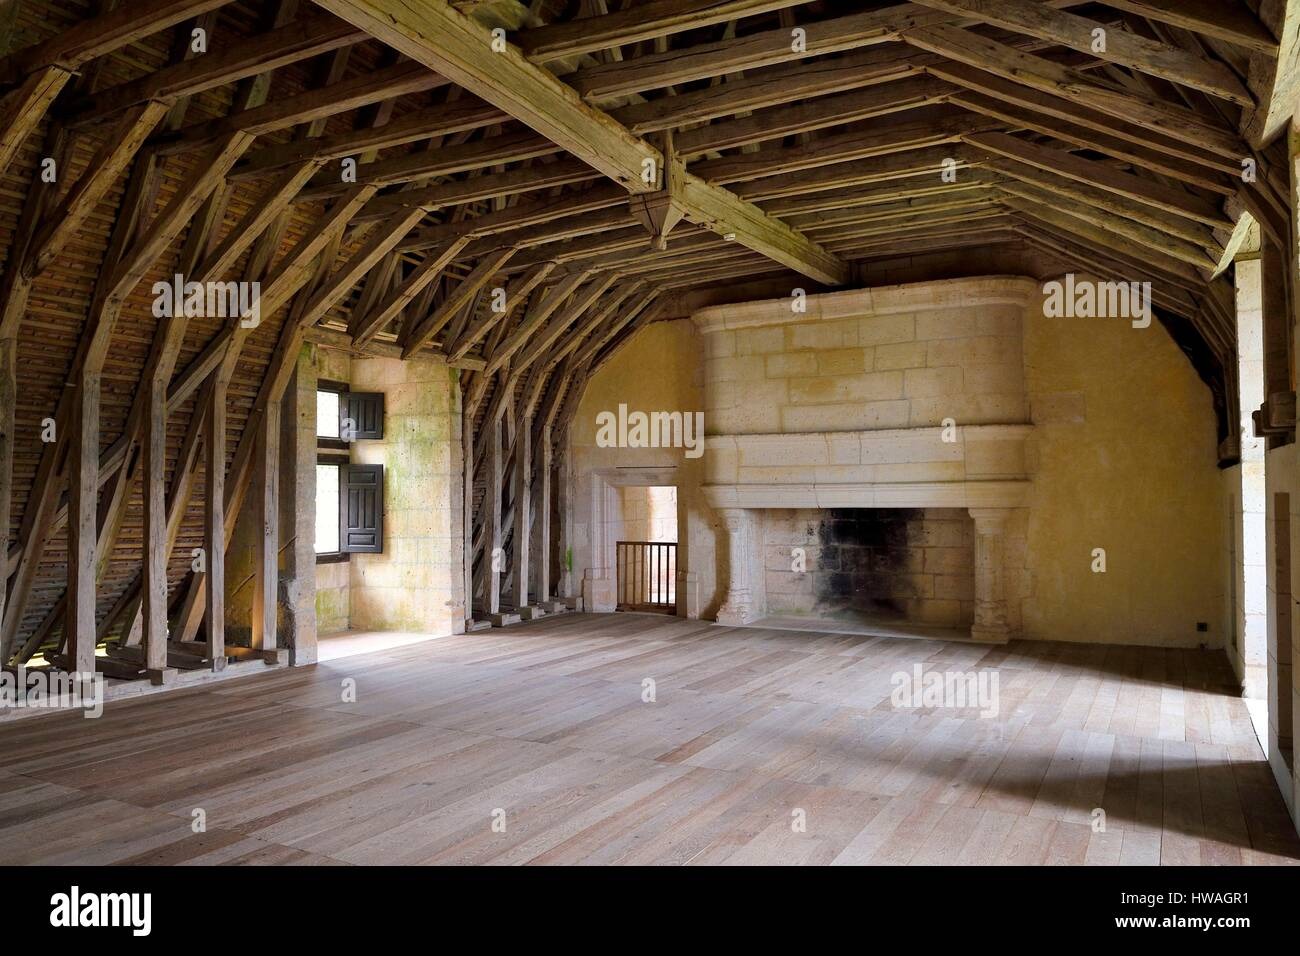 France, Dordogne, Périgord Vert, Villars, Puyguilhem castle, the oak beams in overturned hull boat shaped - Stock Image